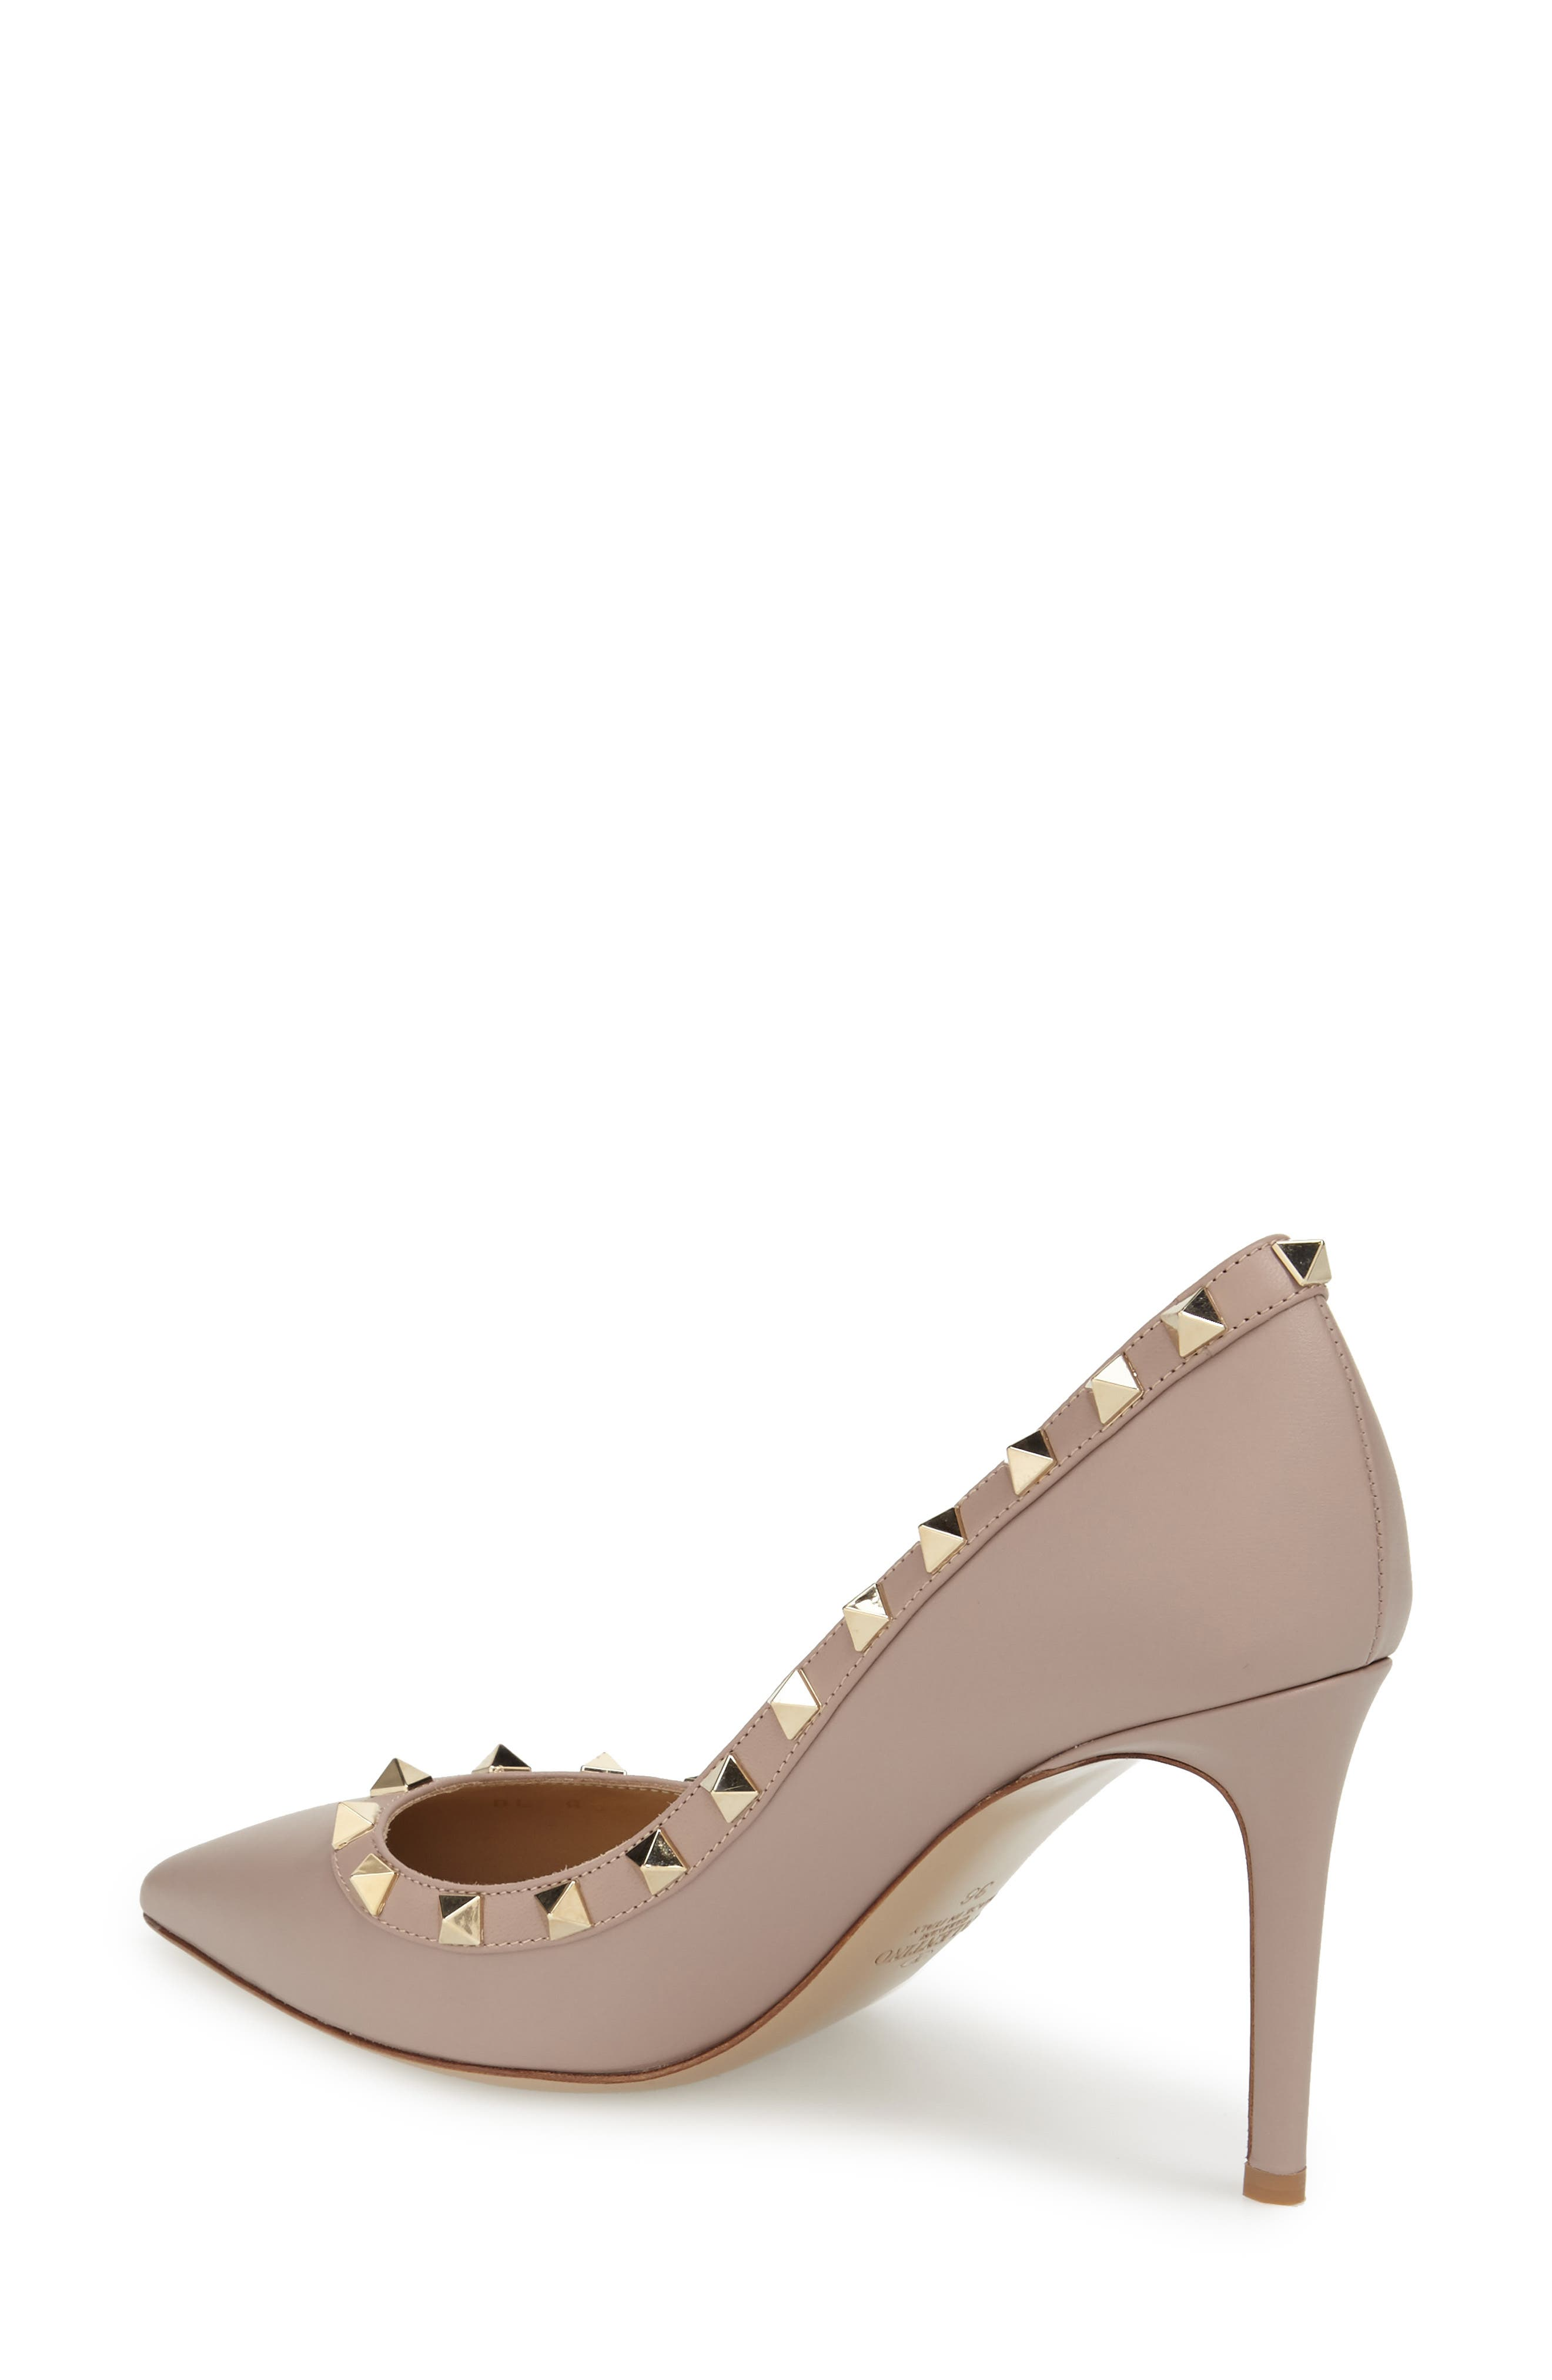 Rockstud Pointy Toe Pump,                             Alternate thumbnail 3, color,                             POUDRE LEATHER